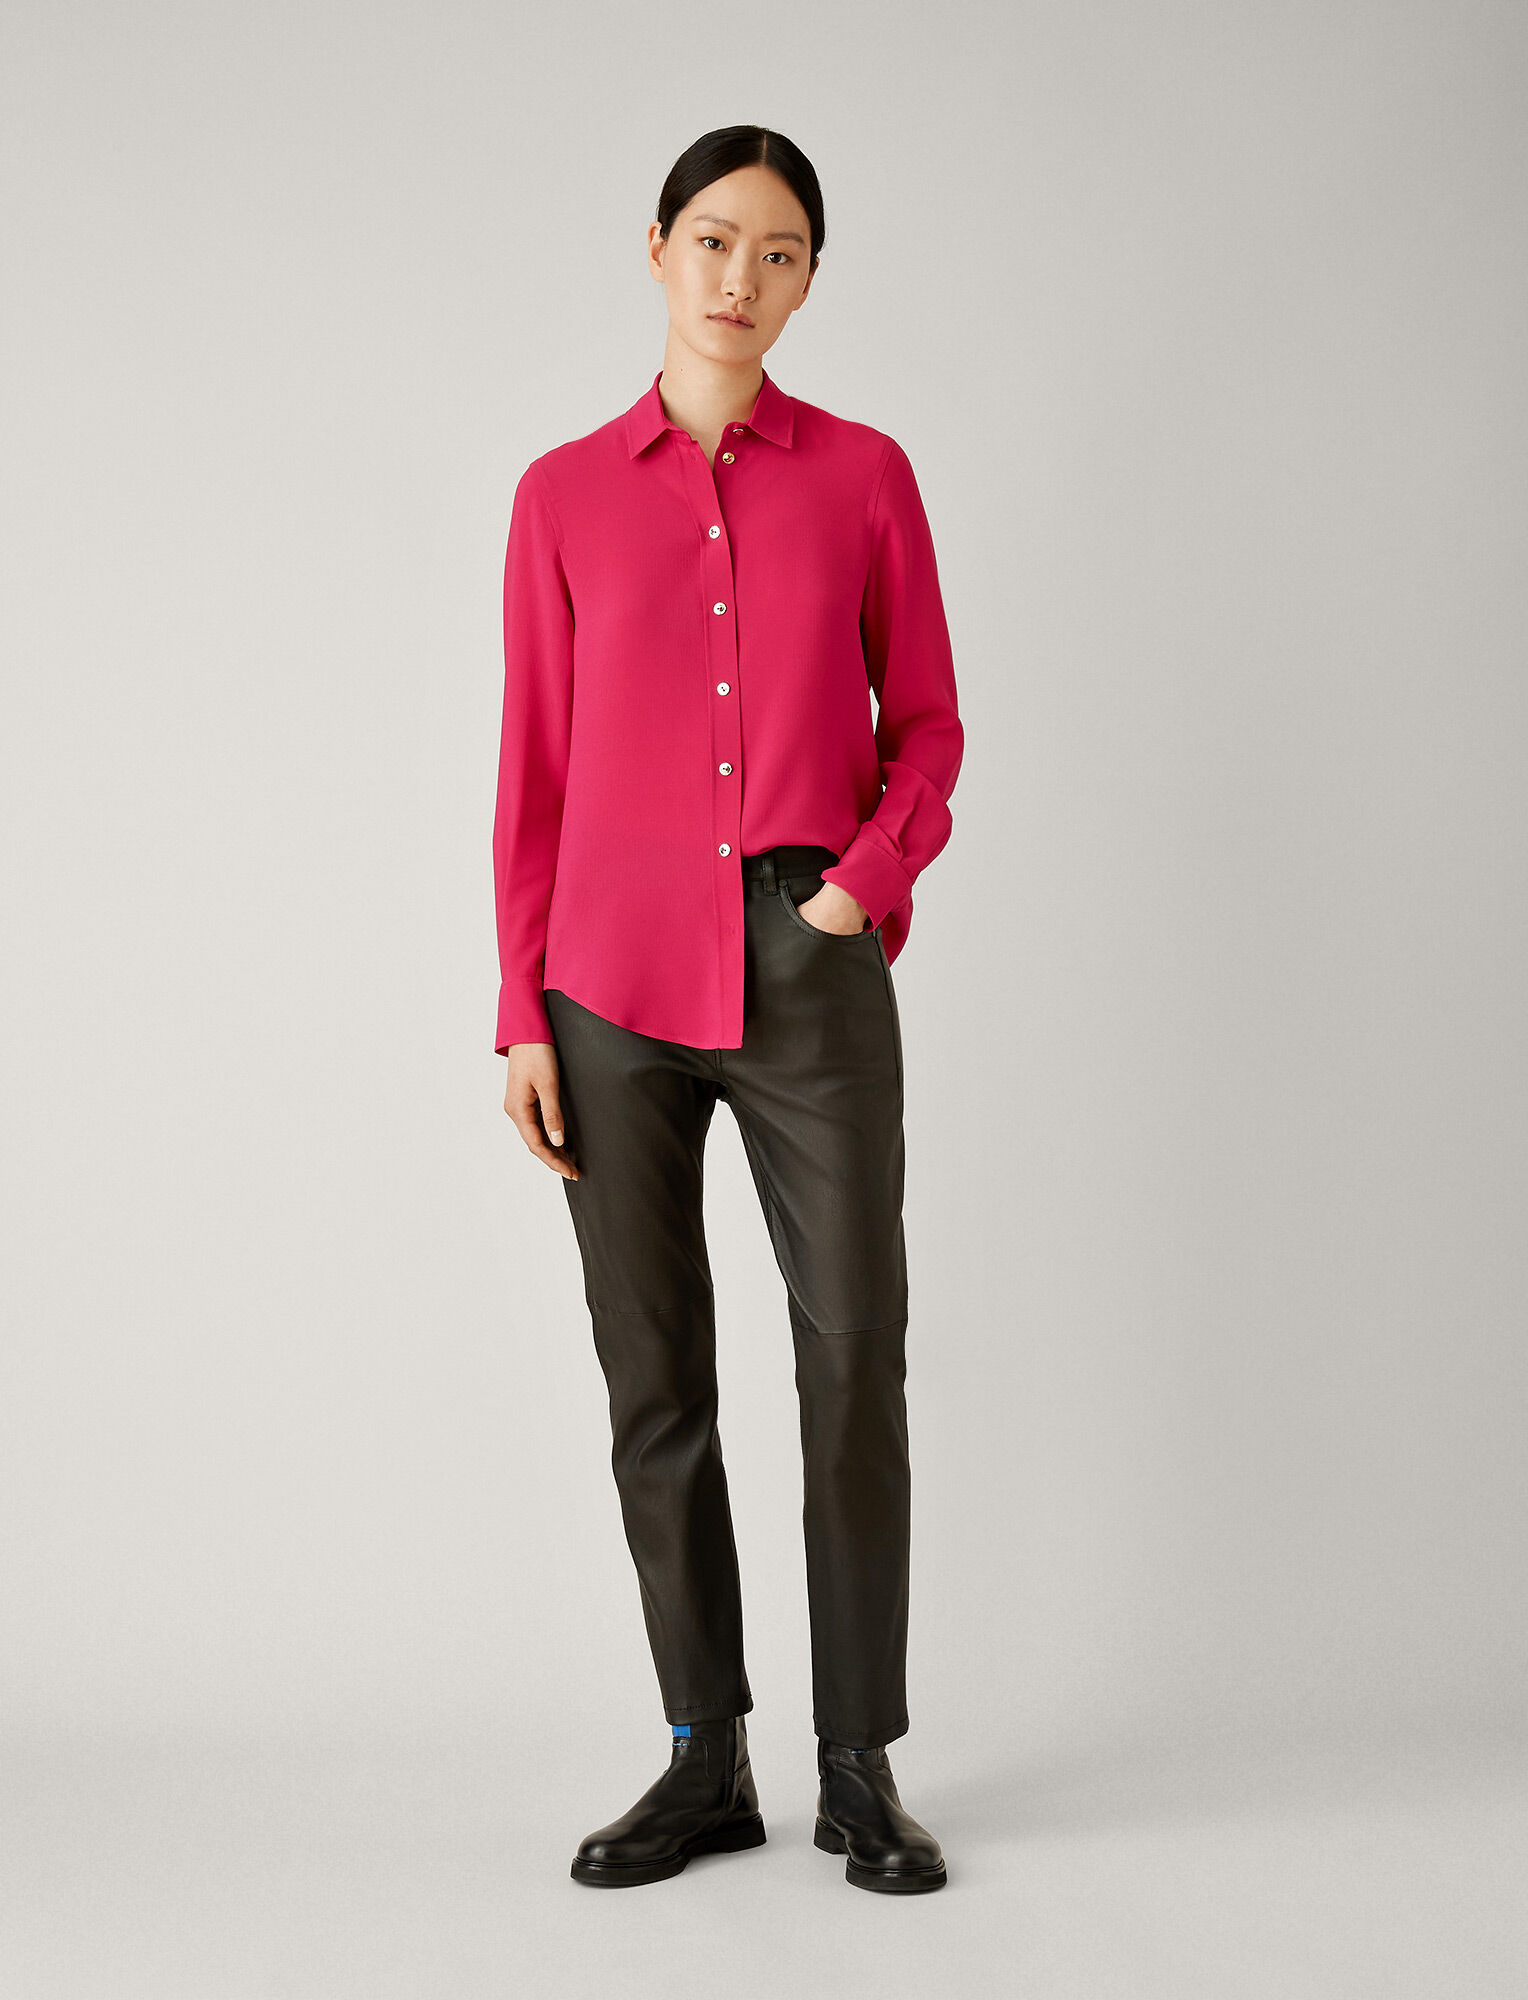 Joseph, New Garçon Silk Rib Shirting Blouse, in CORUNDUM